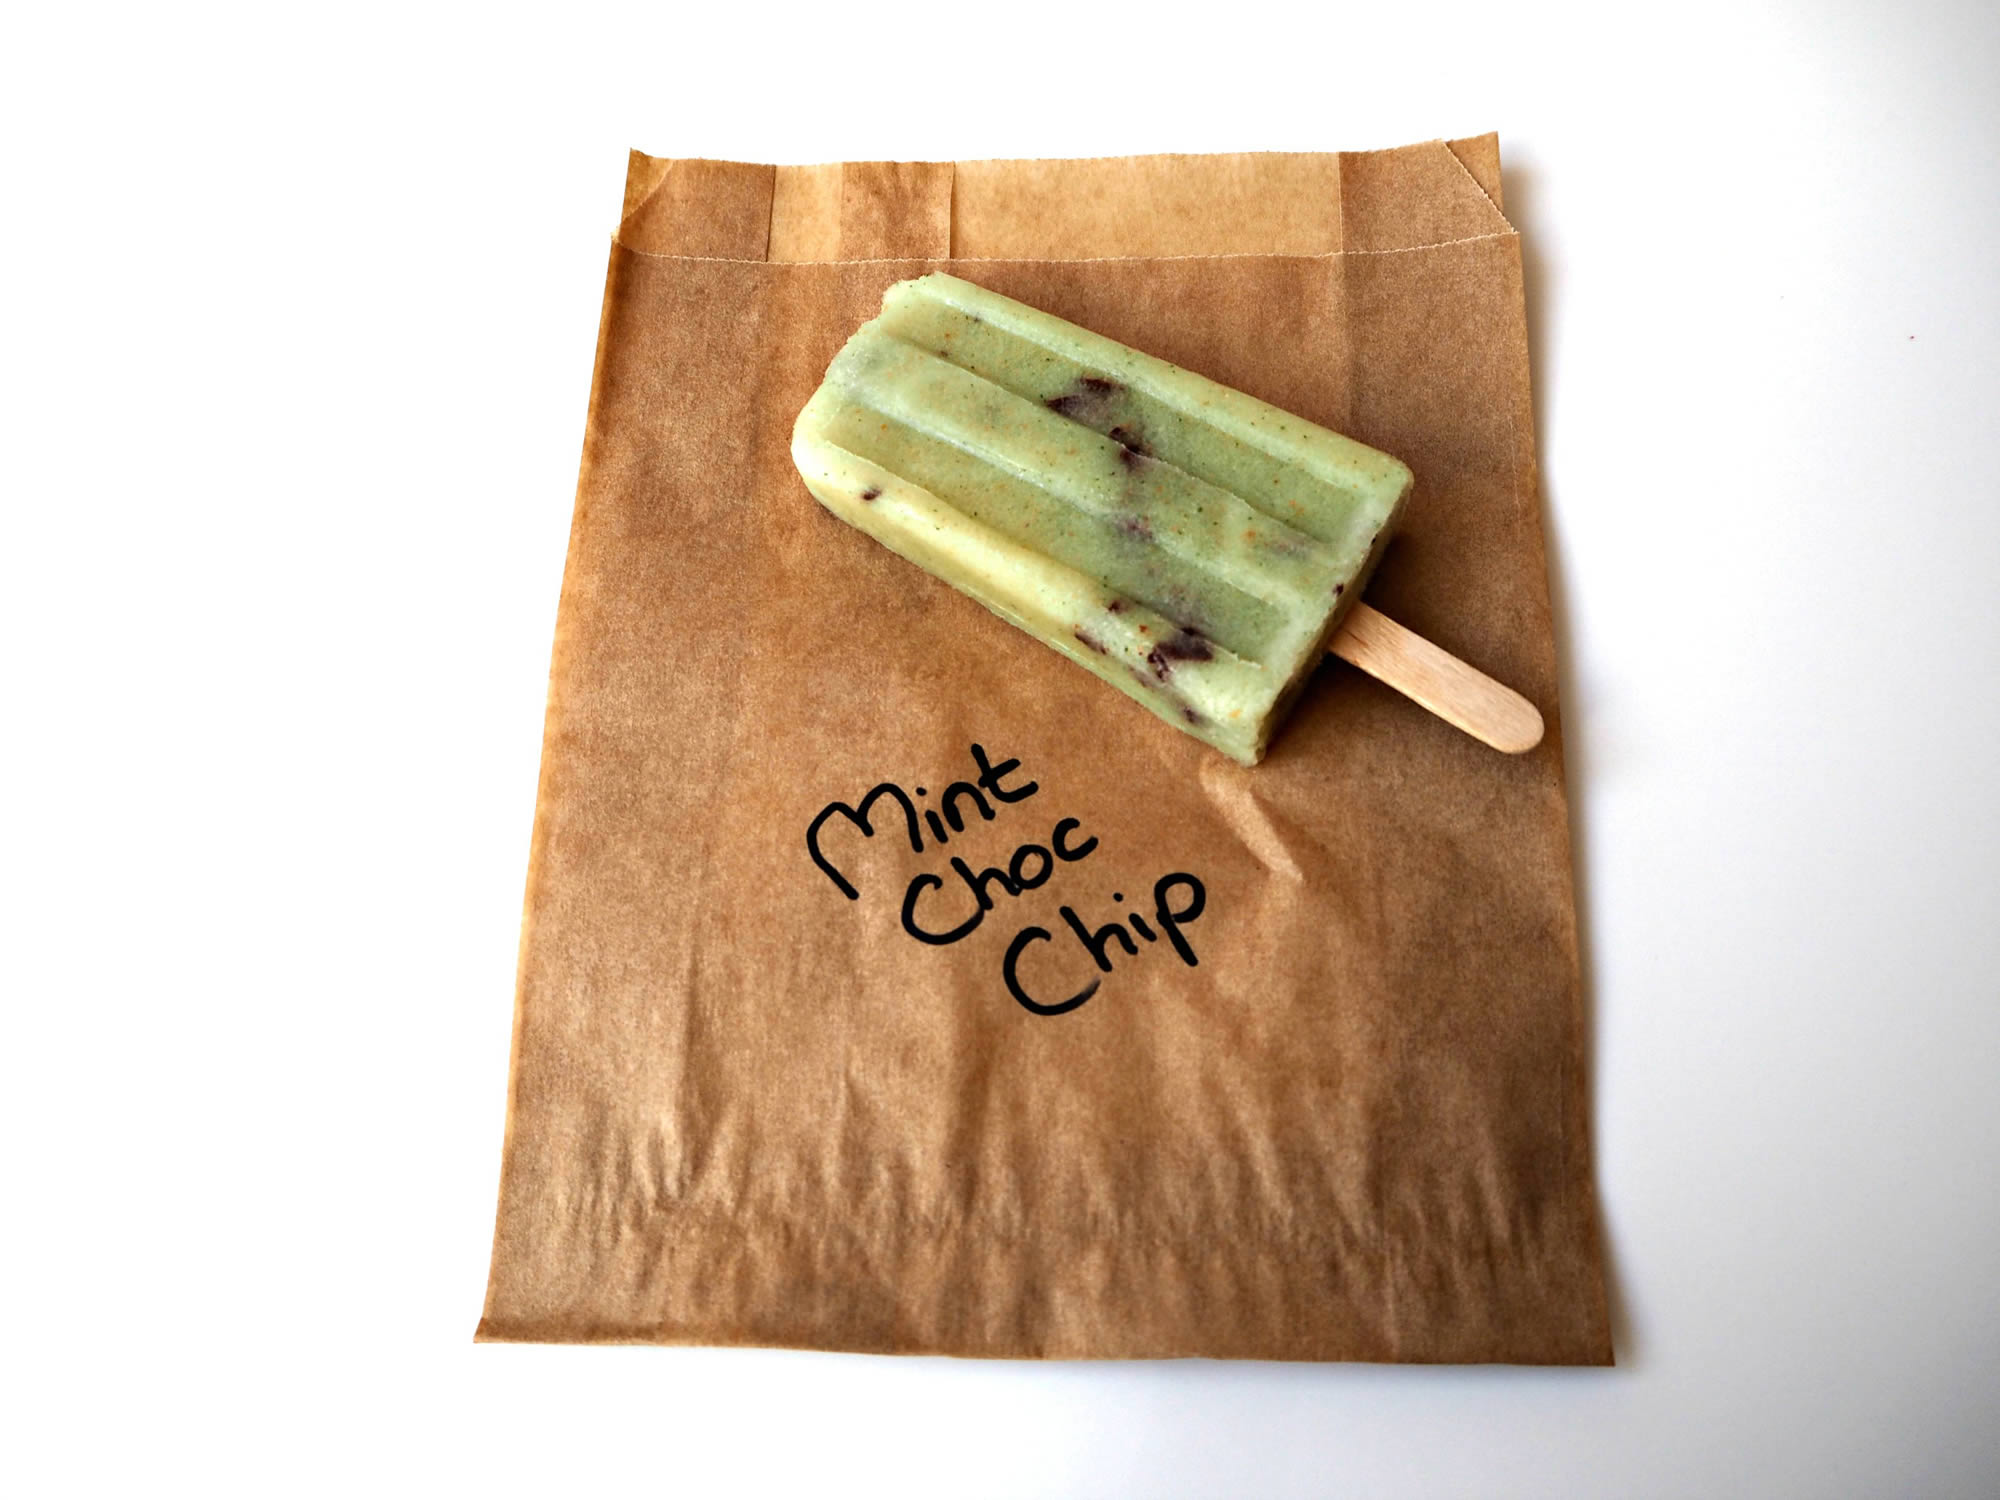 how to make ice lollies at home without molds